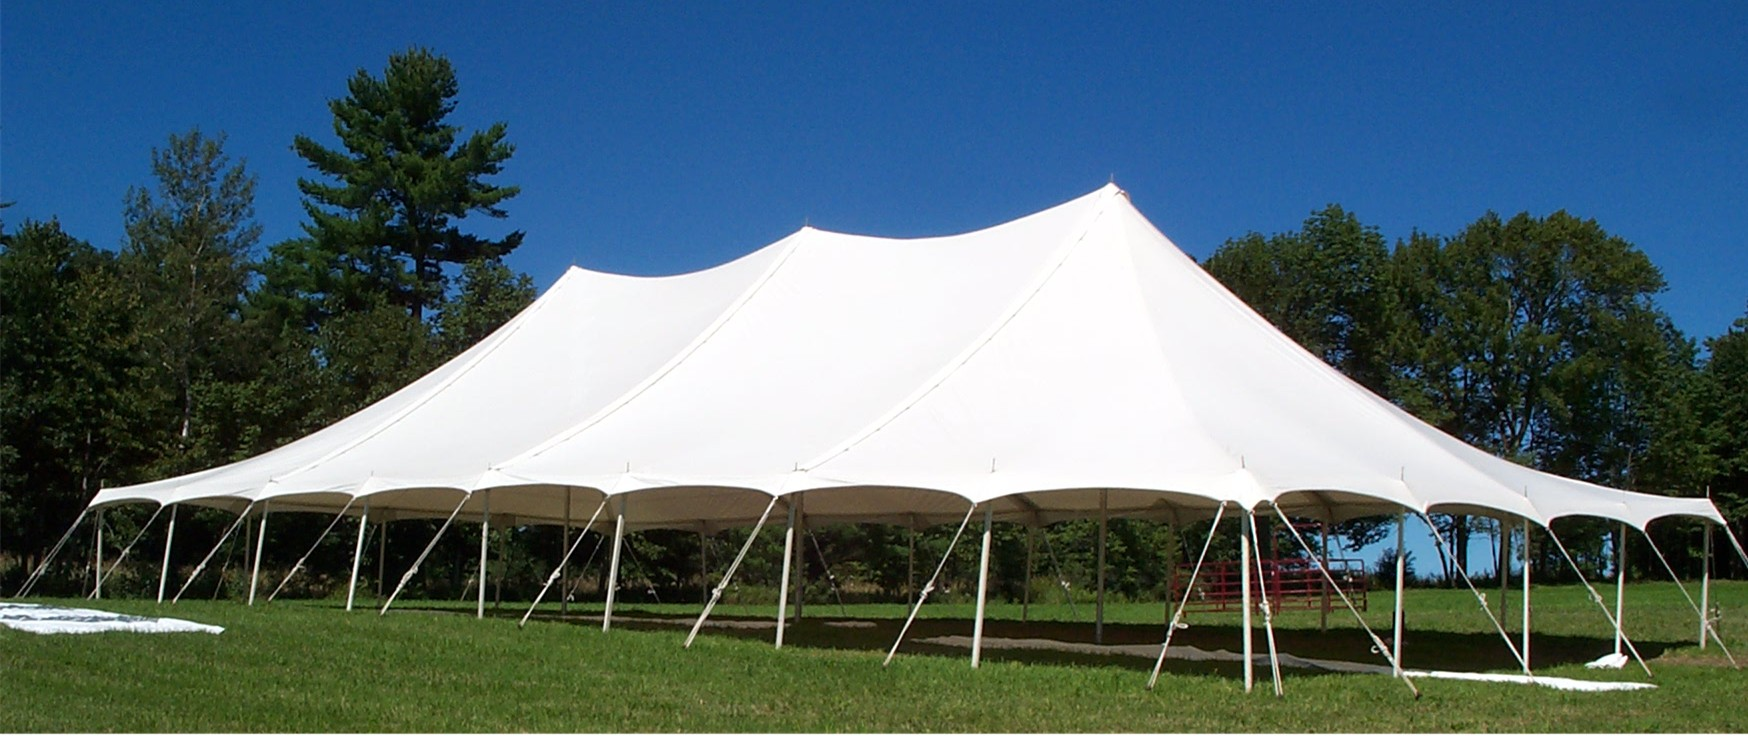 About Our Durable Tents